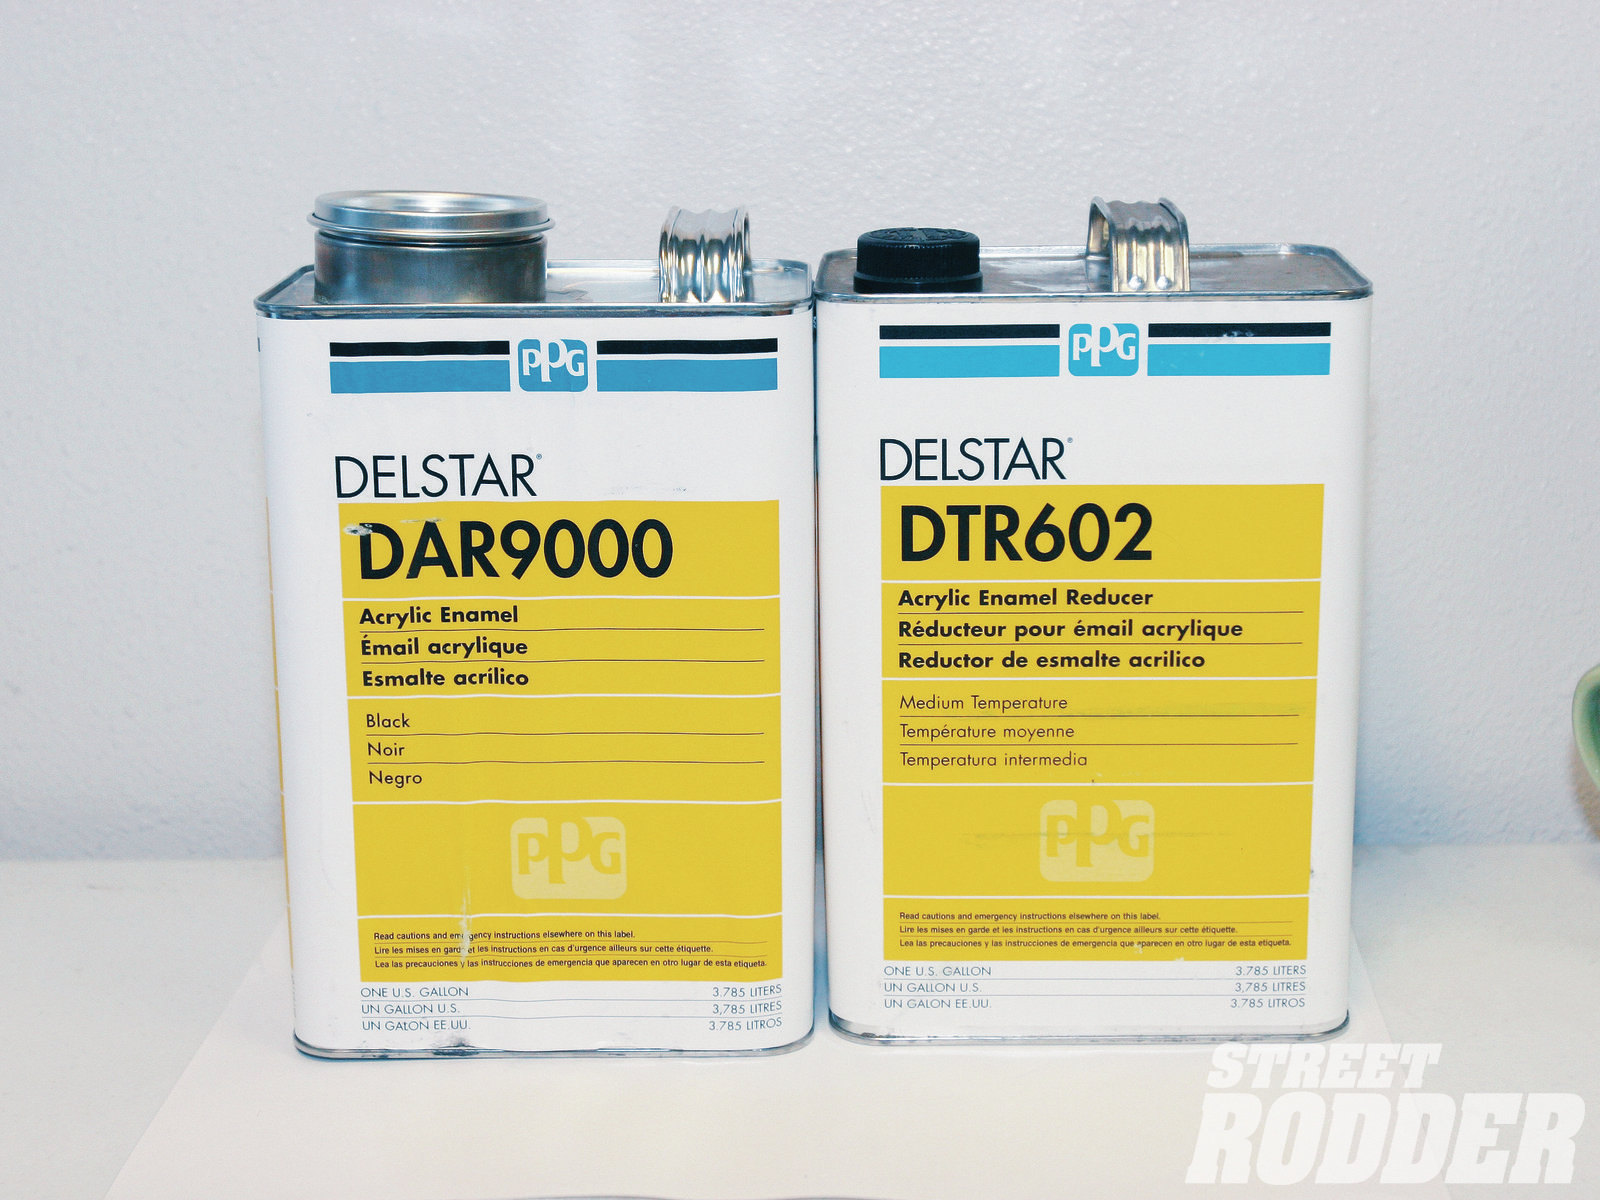 Still with us is the Delstar line of acrylic enamel. Once commonly used for repair work in body shops, it is still seen as affordable single-stage paint on street rod chassis and components.